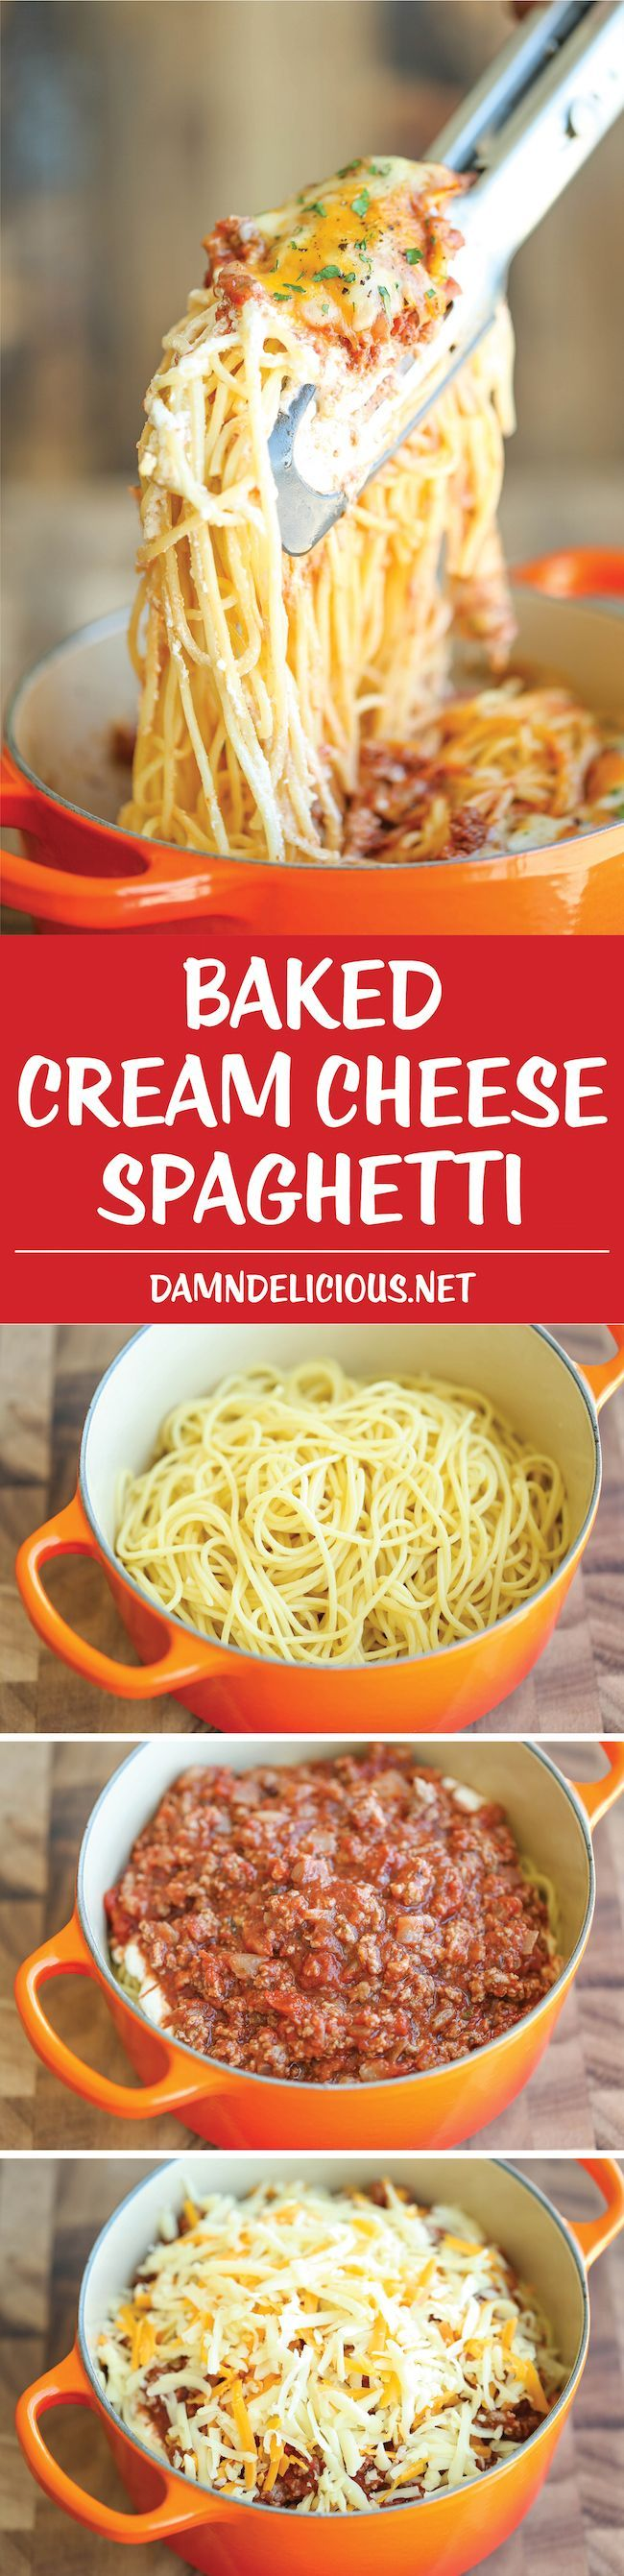 Baked Cream Cheese Spaghetti